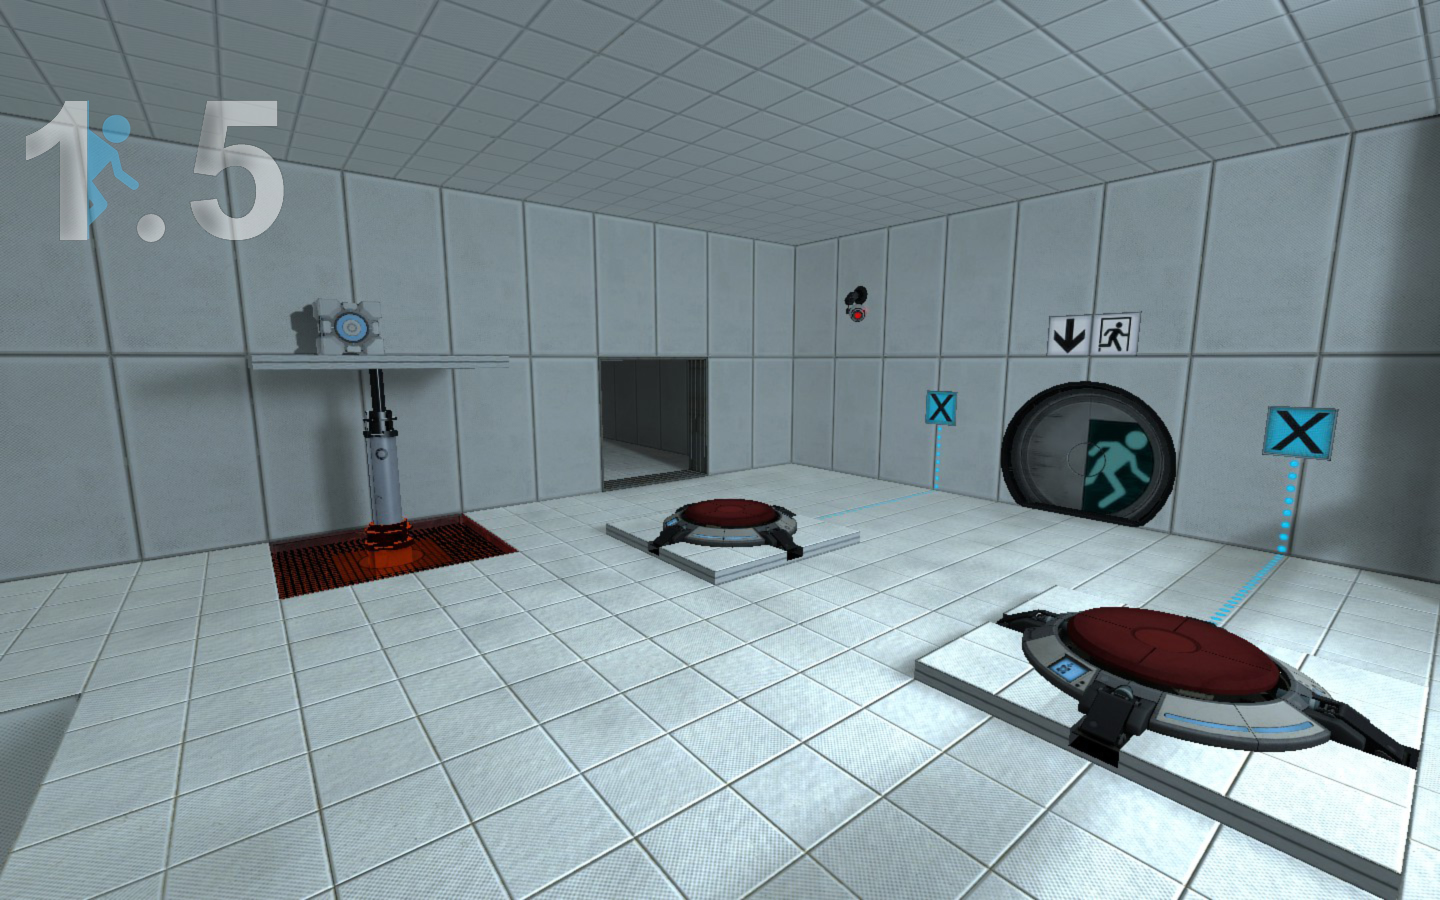 Cleaner Floor Texture Image Portal 1 5 Mod For Portal 2